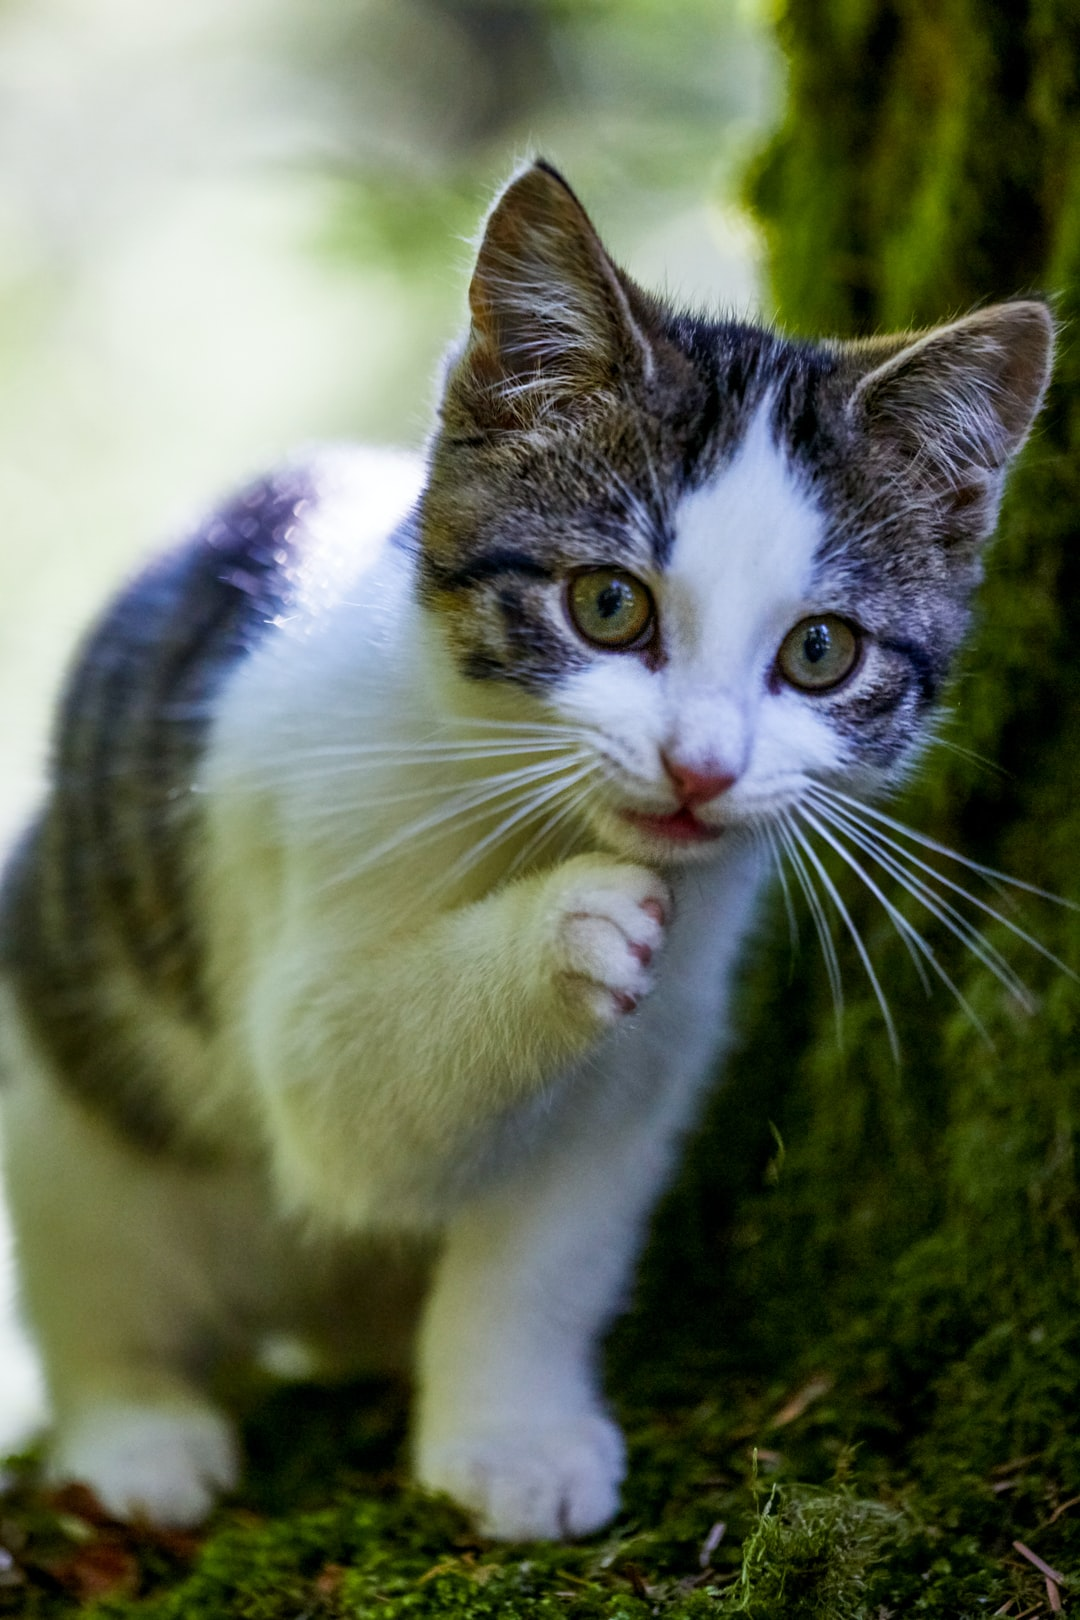 the beautiful young cat in the moss